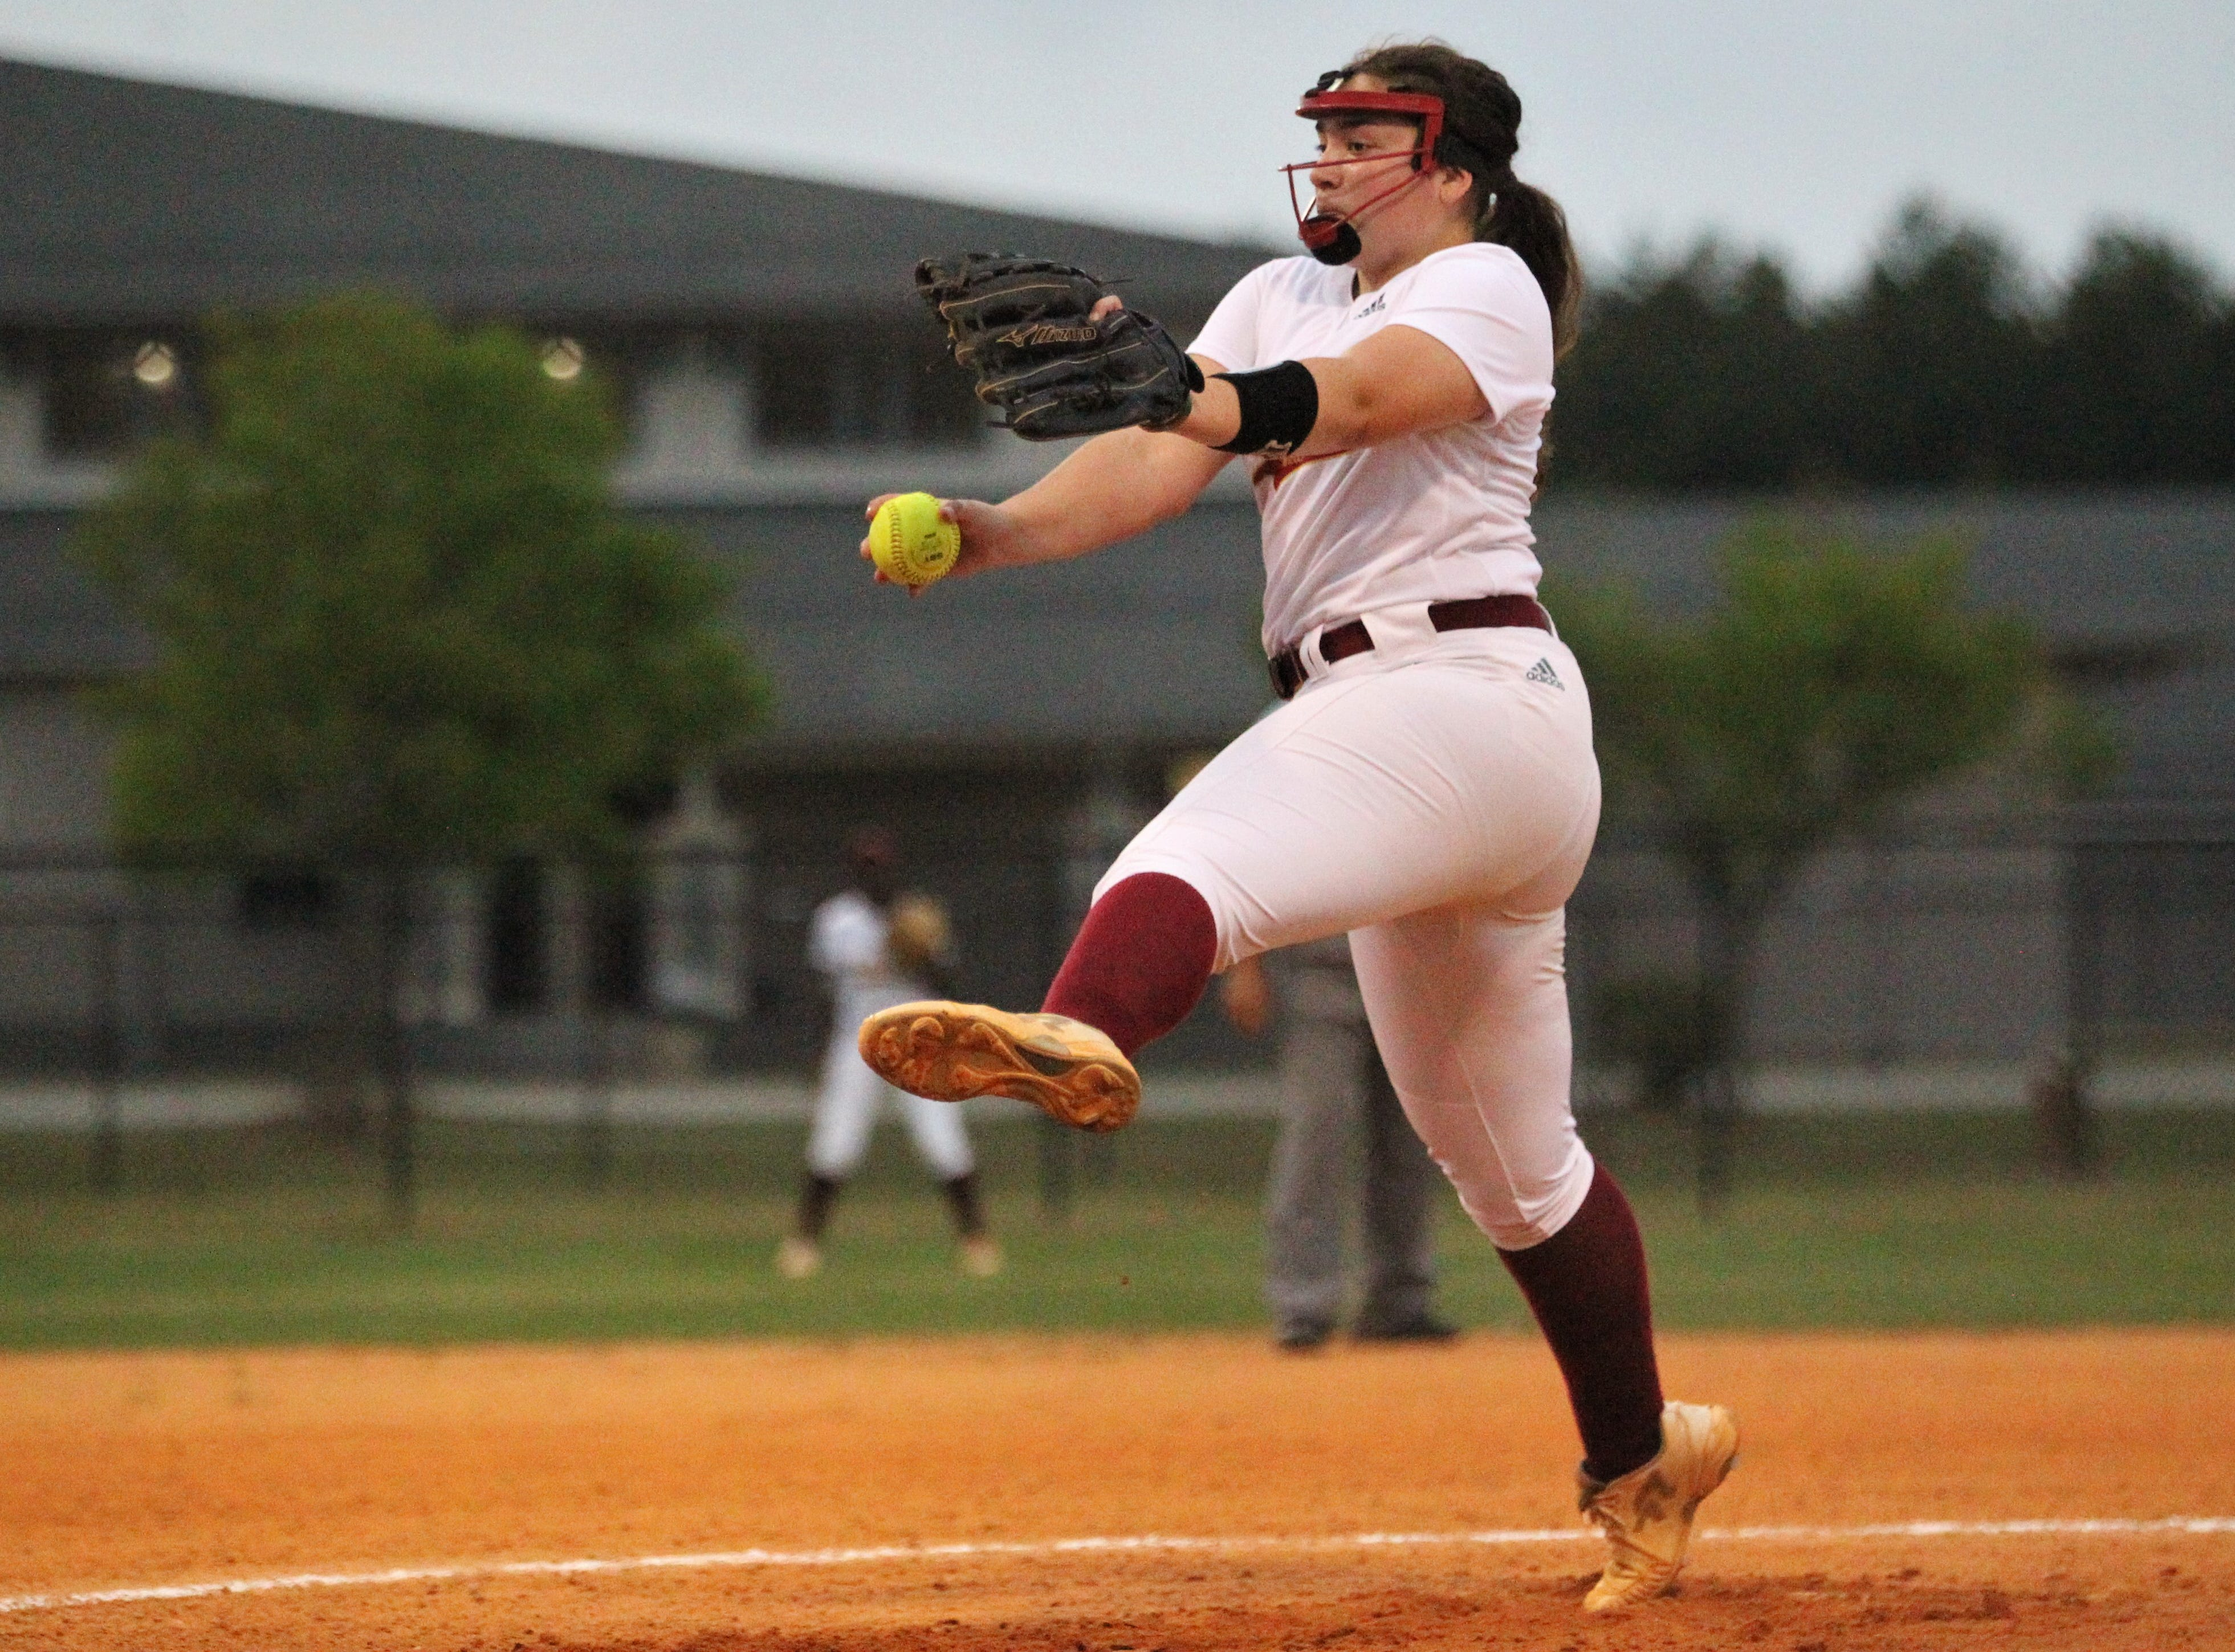 Florida High junior Julia Hayes pitches as Lincoln's softball team beat Florida High 7-3 on Thursday, April 4, 2019.